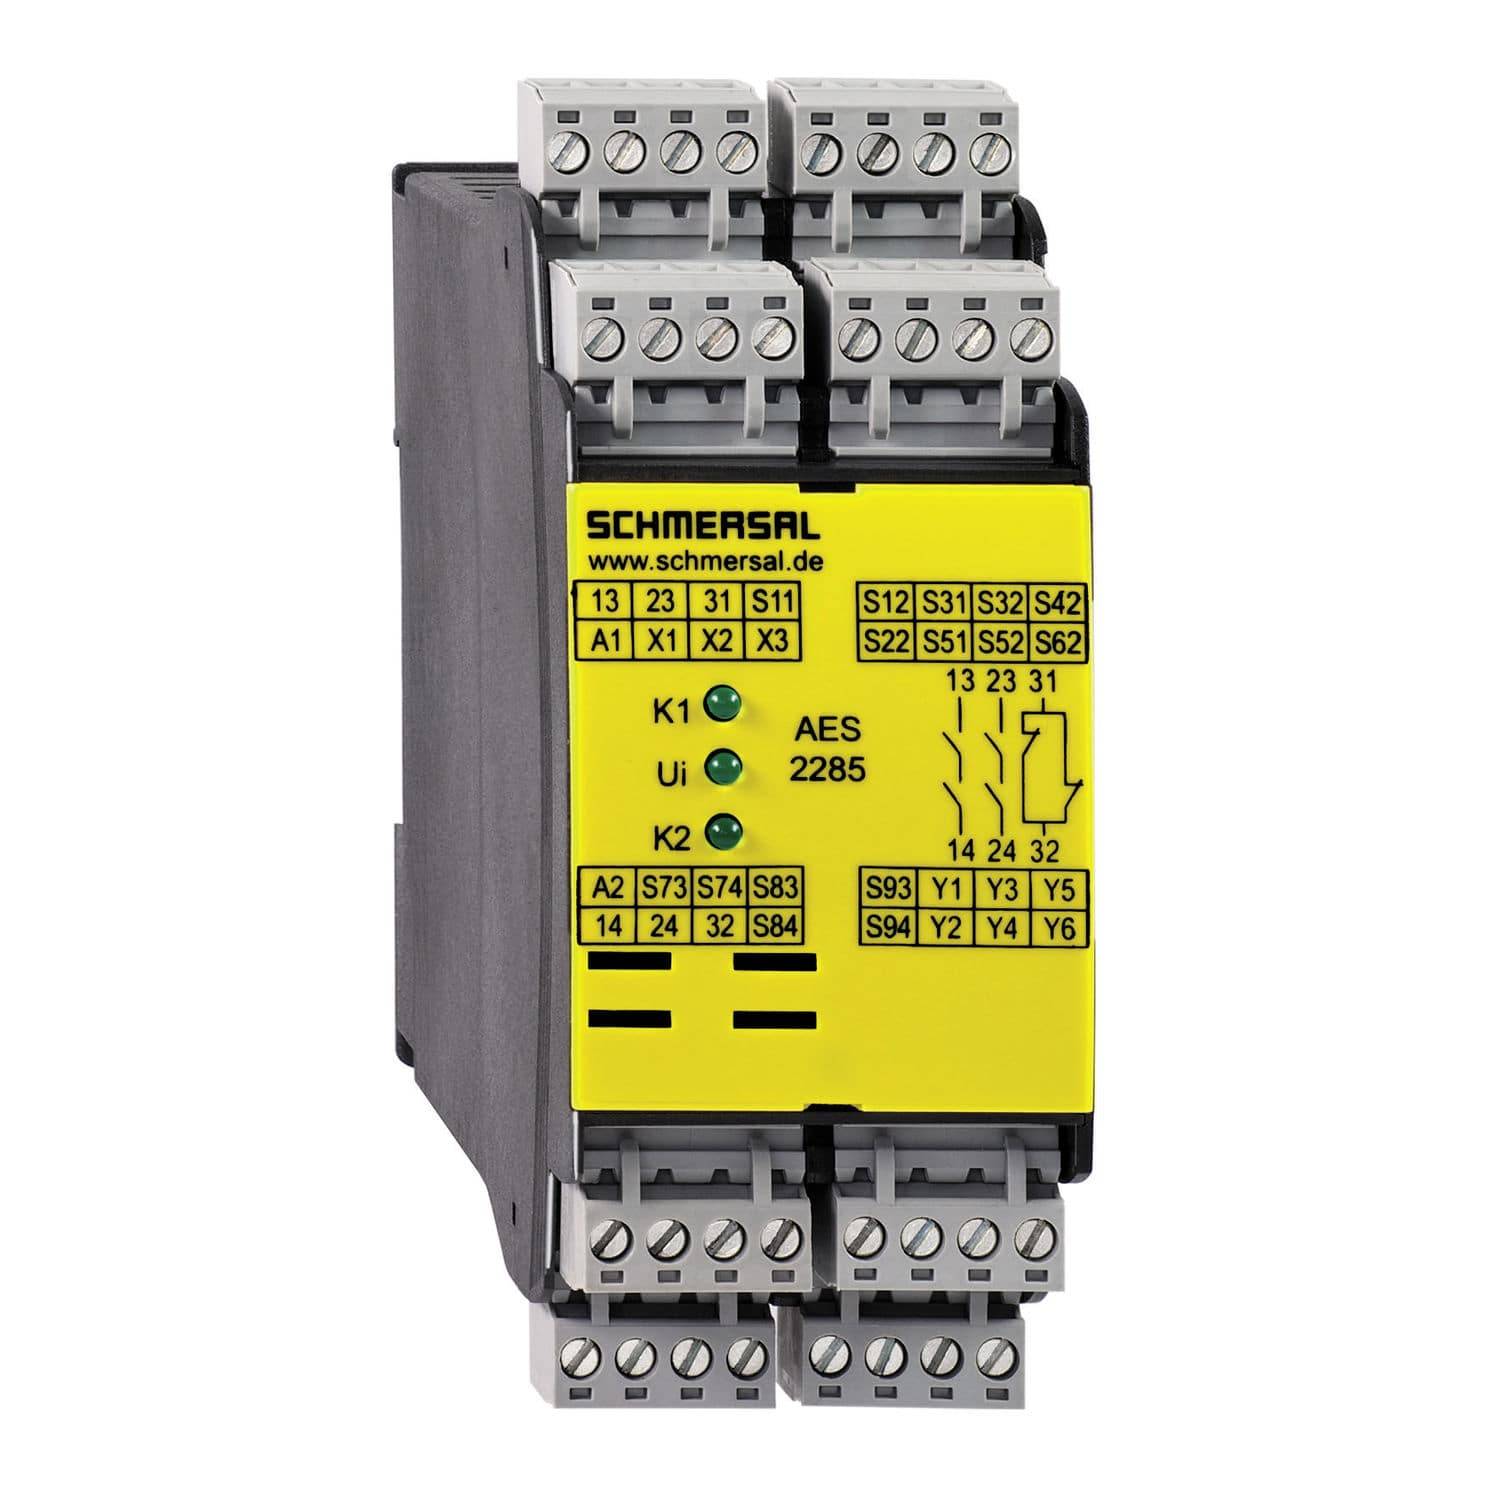 safety relay - AES 2285